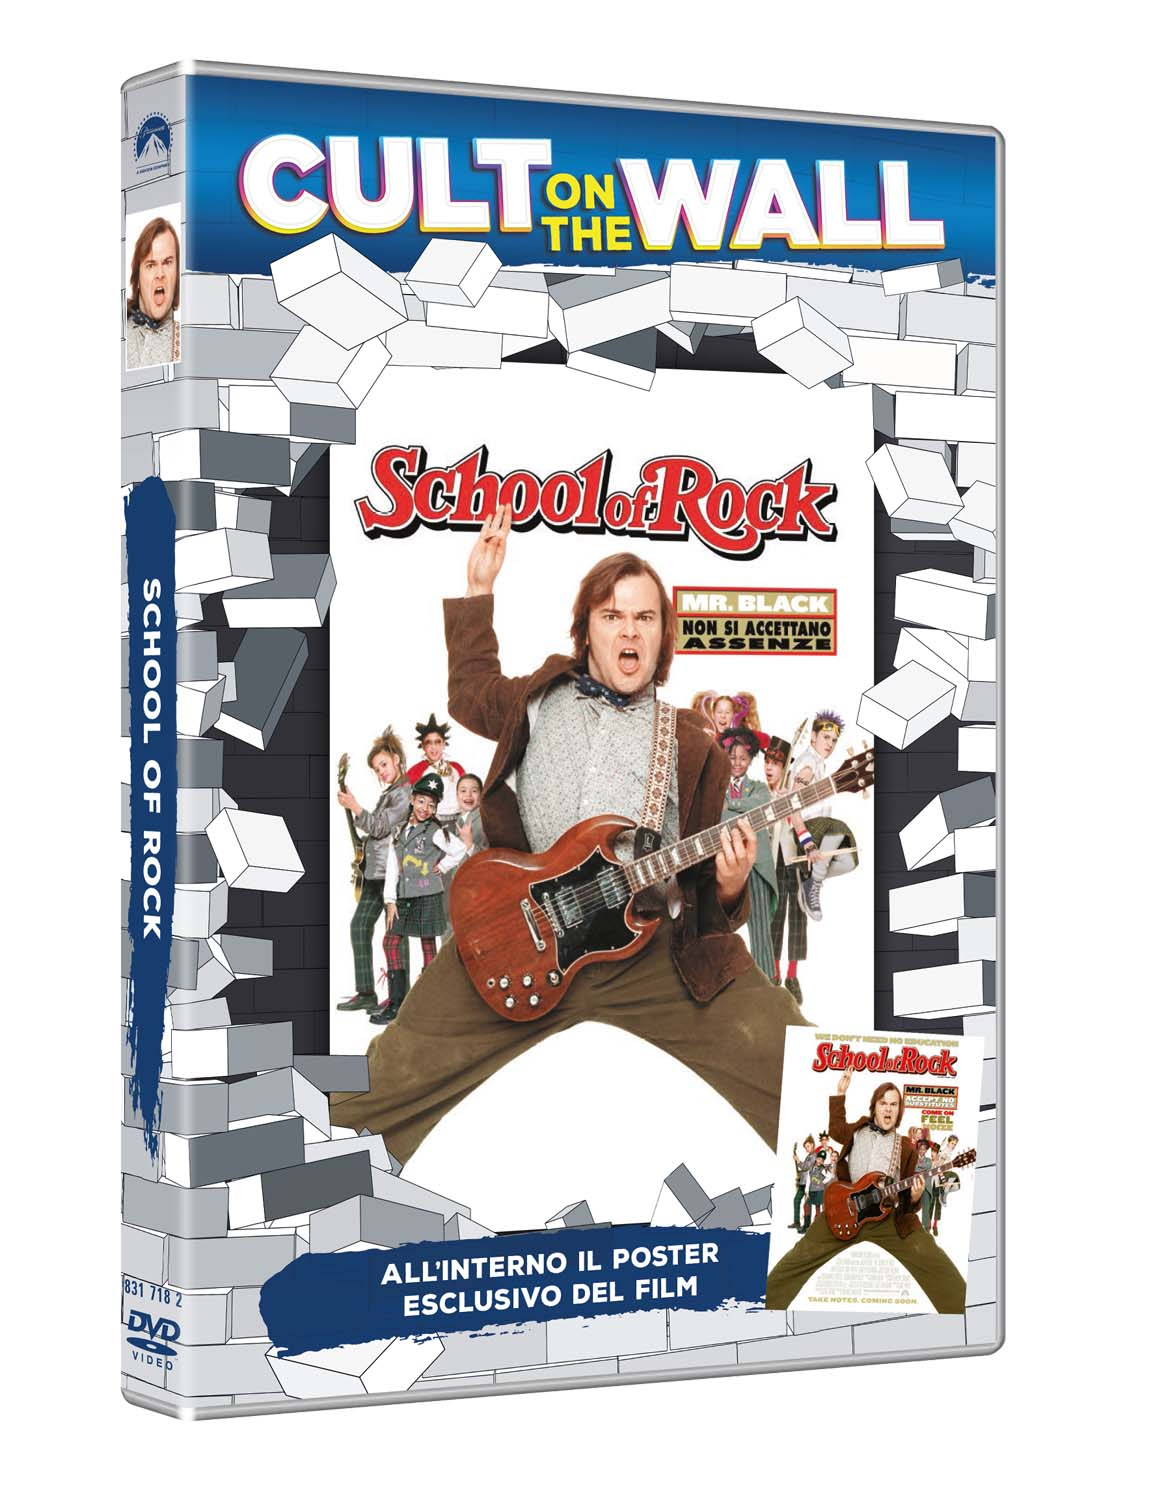 SCHOOL OF ROCK (CULT ON THE WALL) (DVD+POSTER) (DVD)